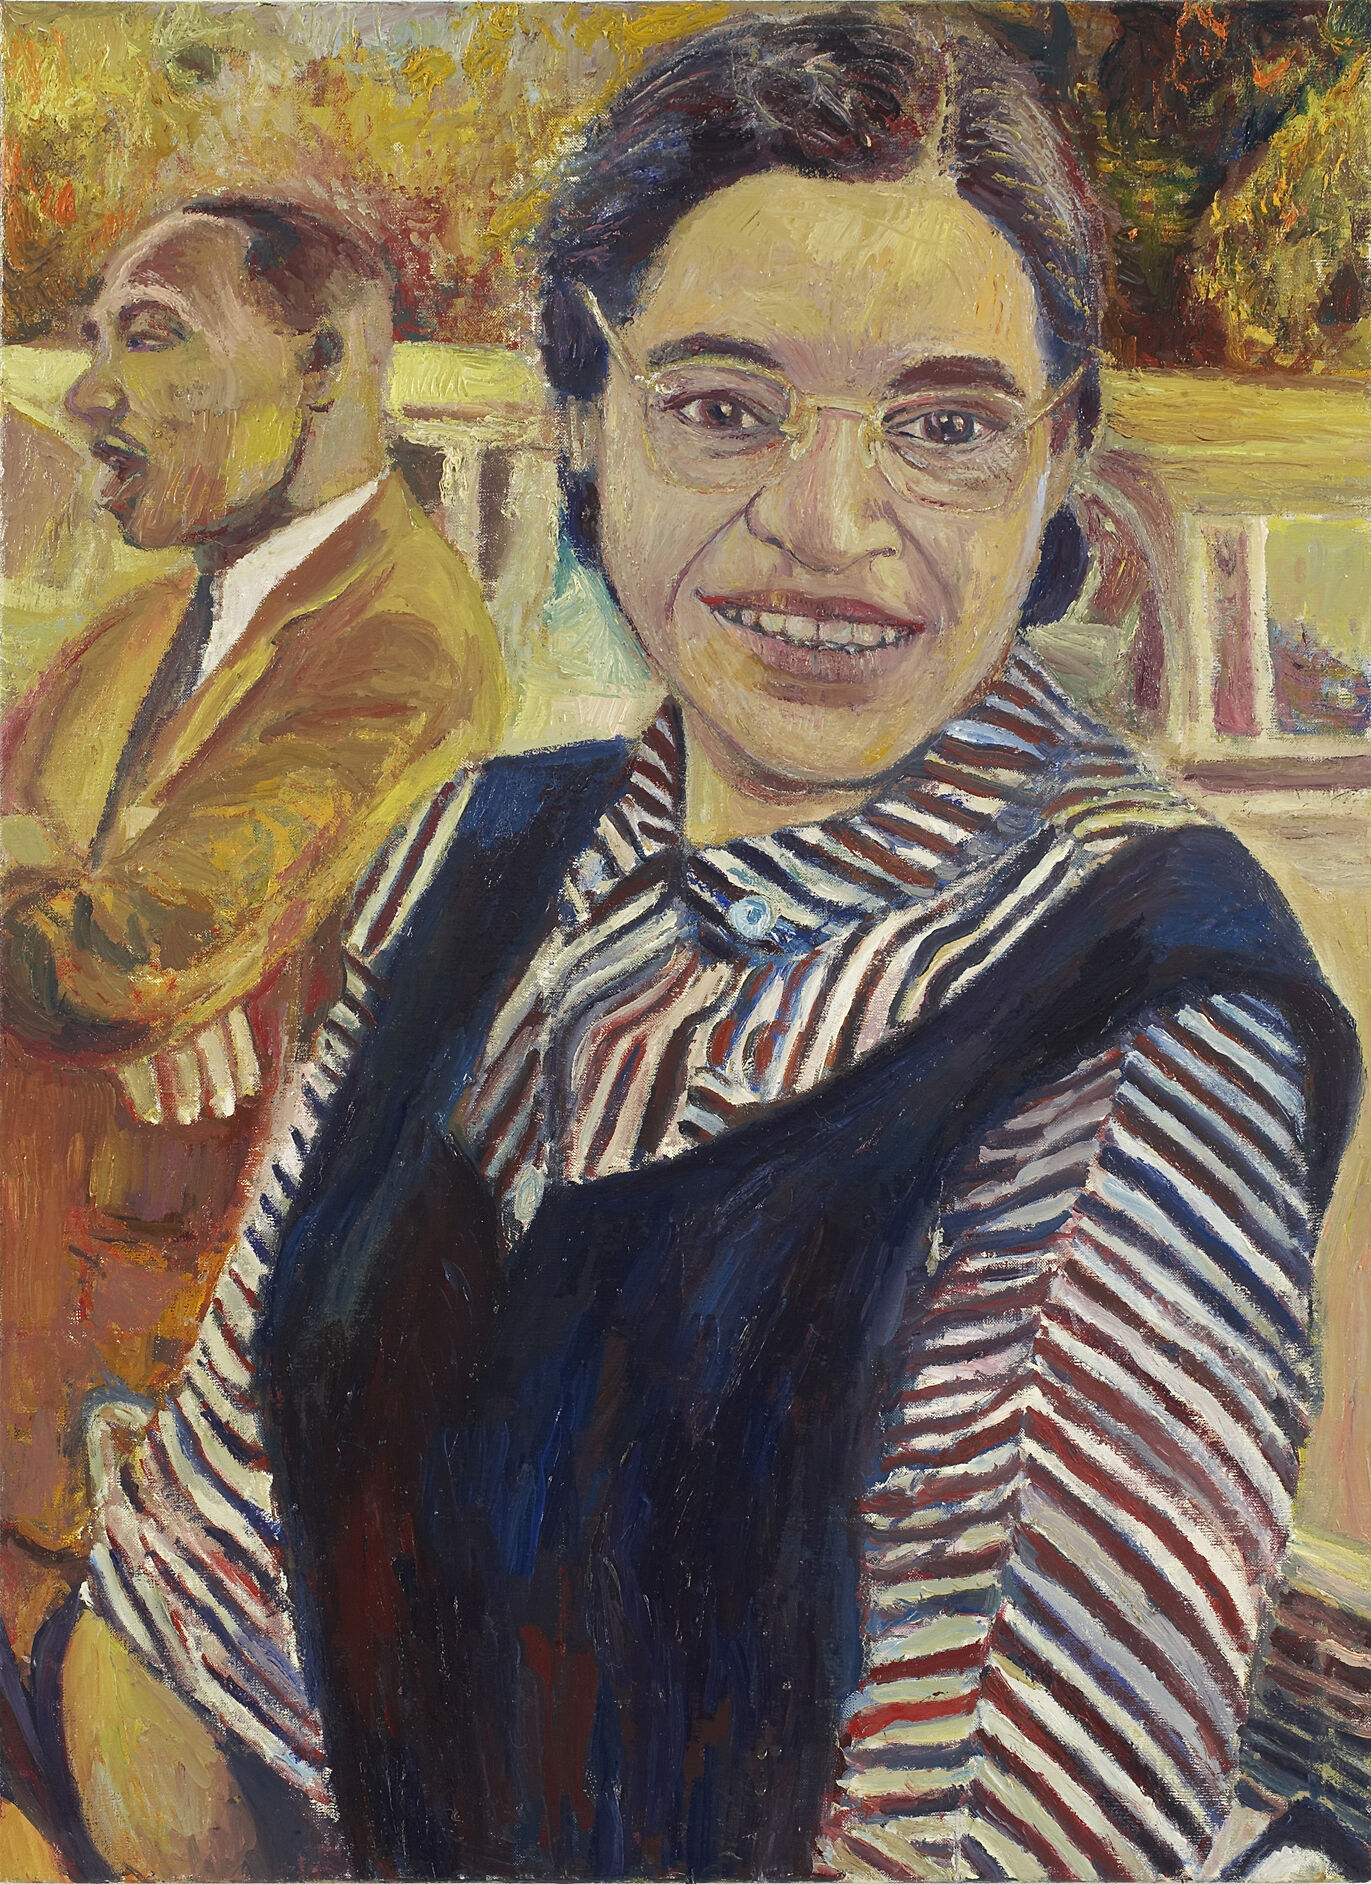 A painting of Rosa Park and Martin Luther King, Jr.